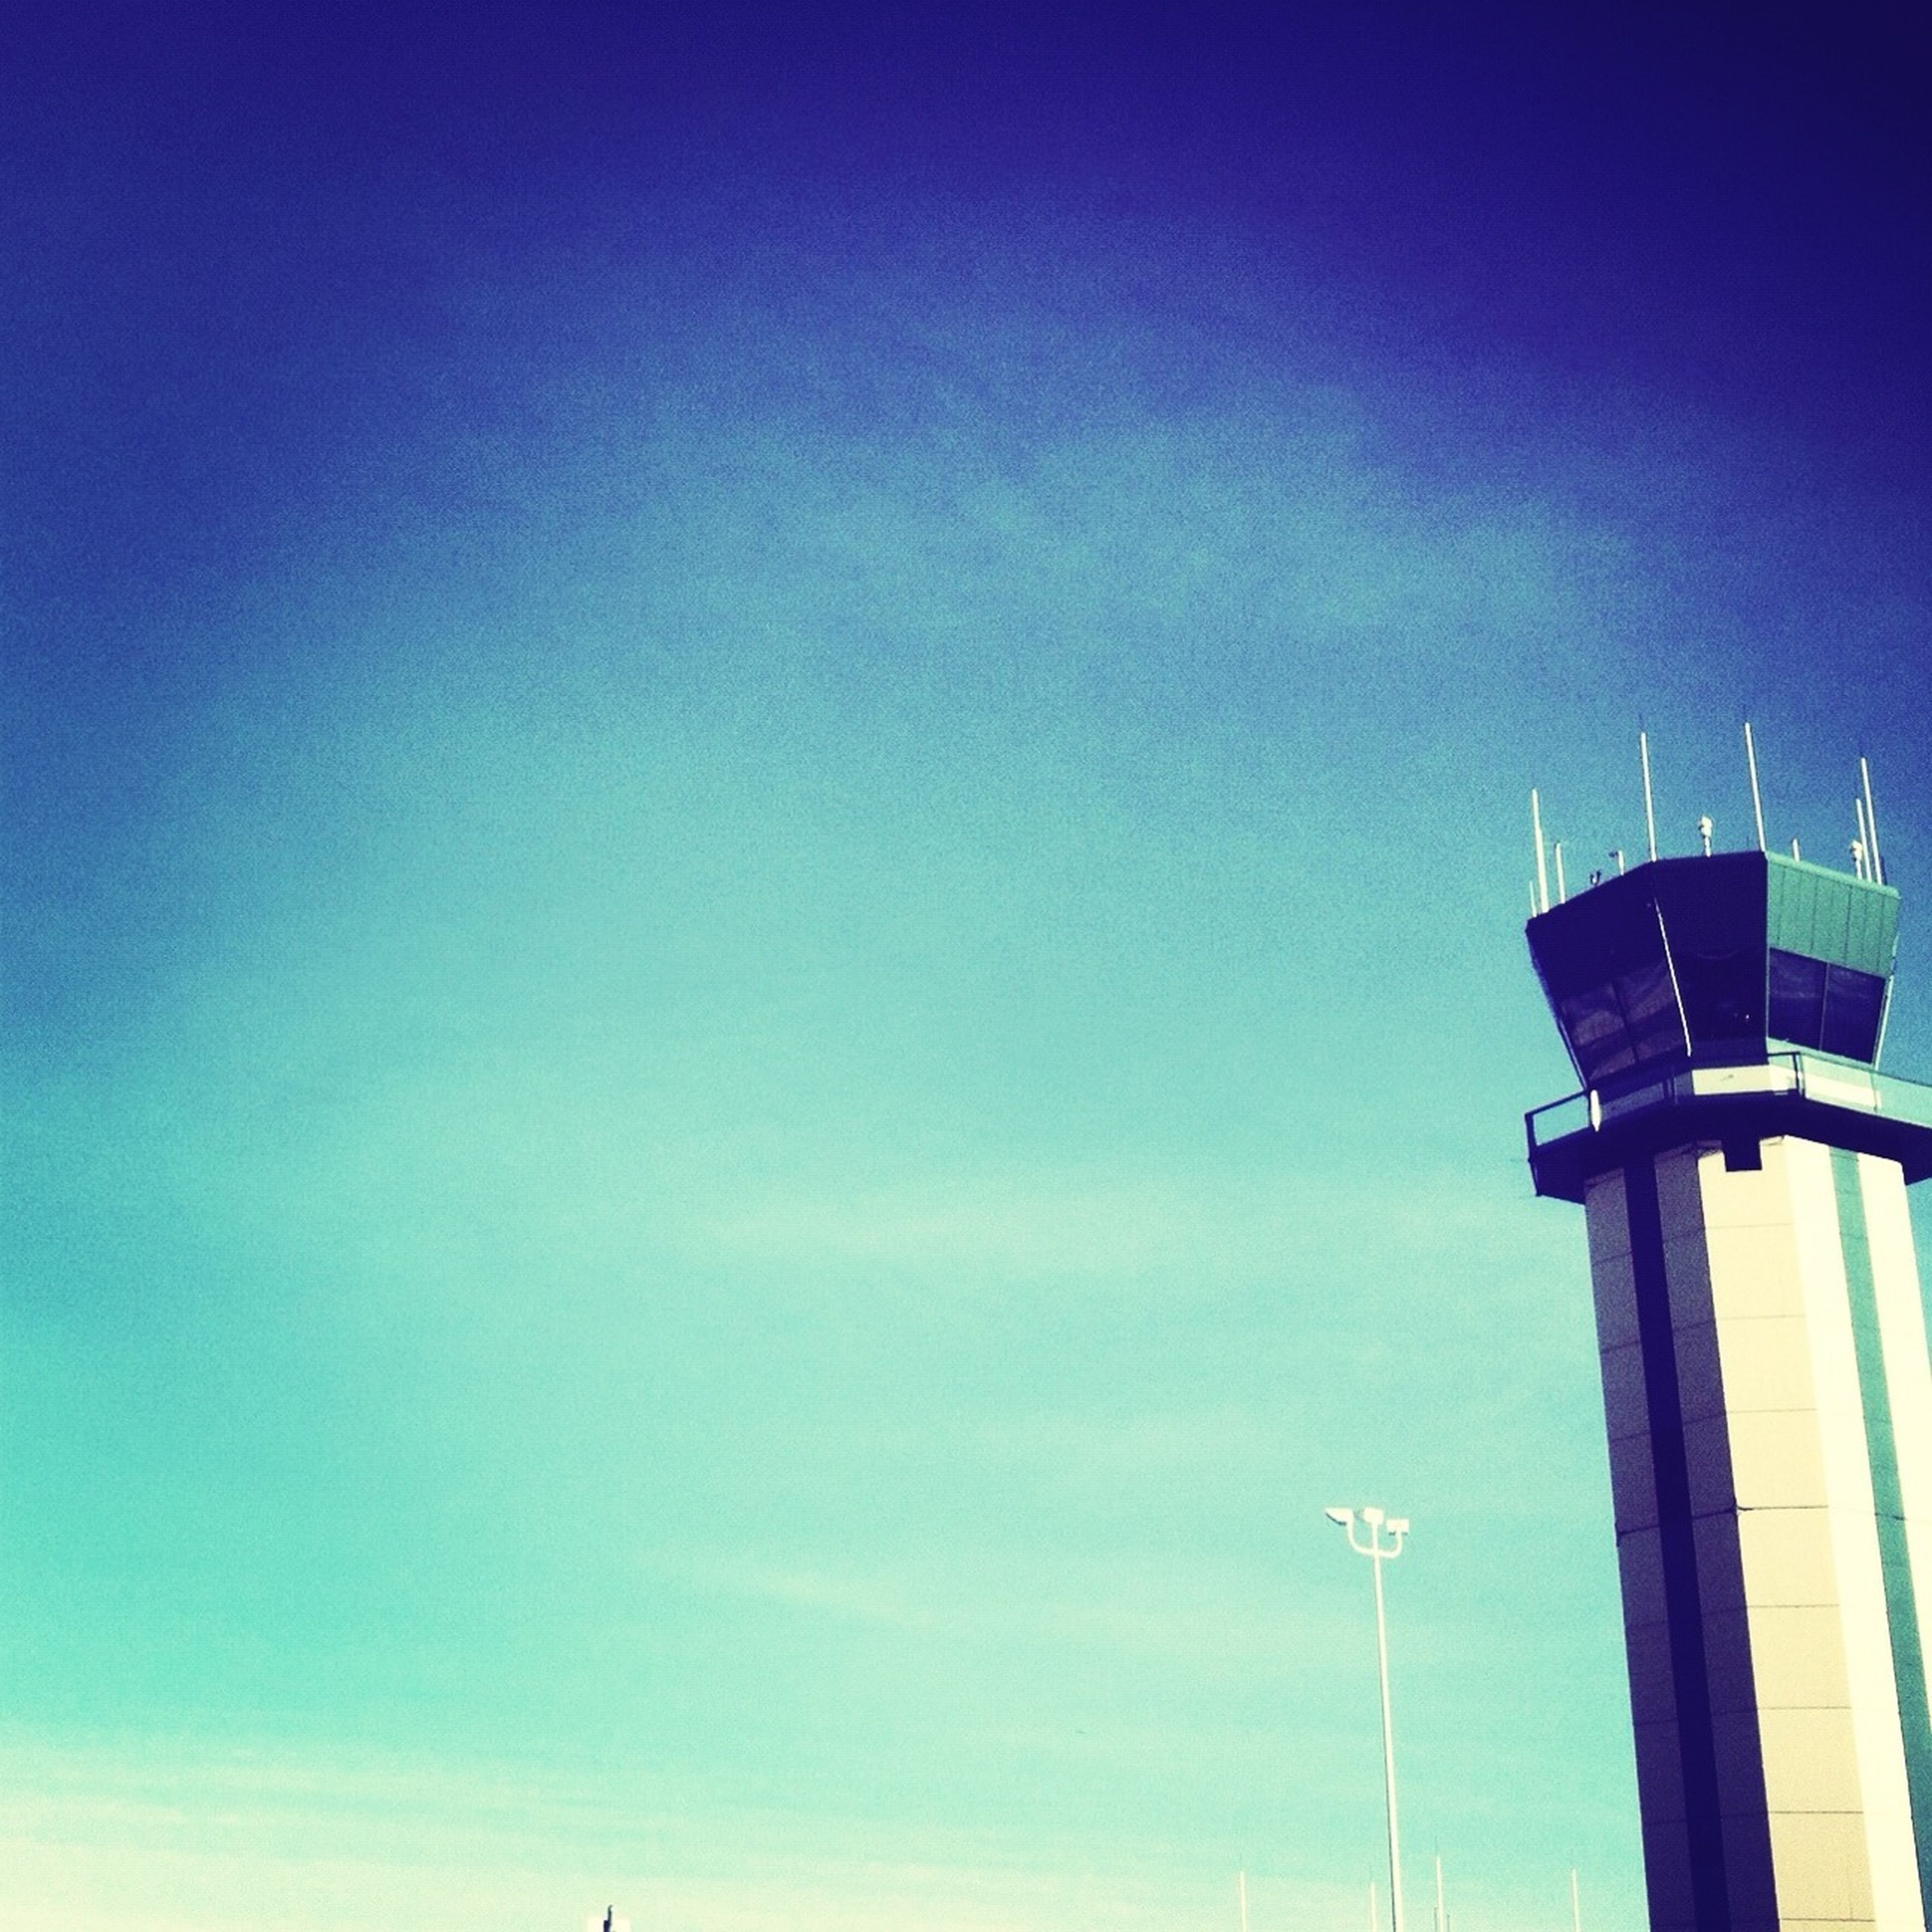 low angle view, blue, sky, built structure, street light, architecture, lighting equipment, copy space, pole, building exterior, tower, technology, tall - high, clear sky, communication, no people, outdoors, high section, guidance, day